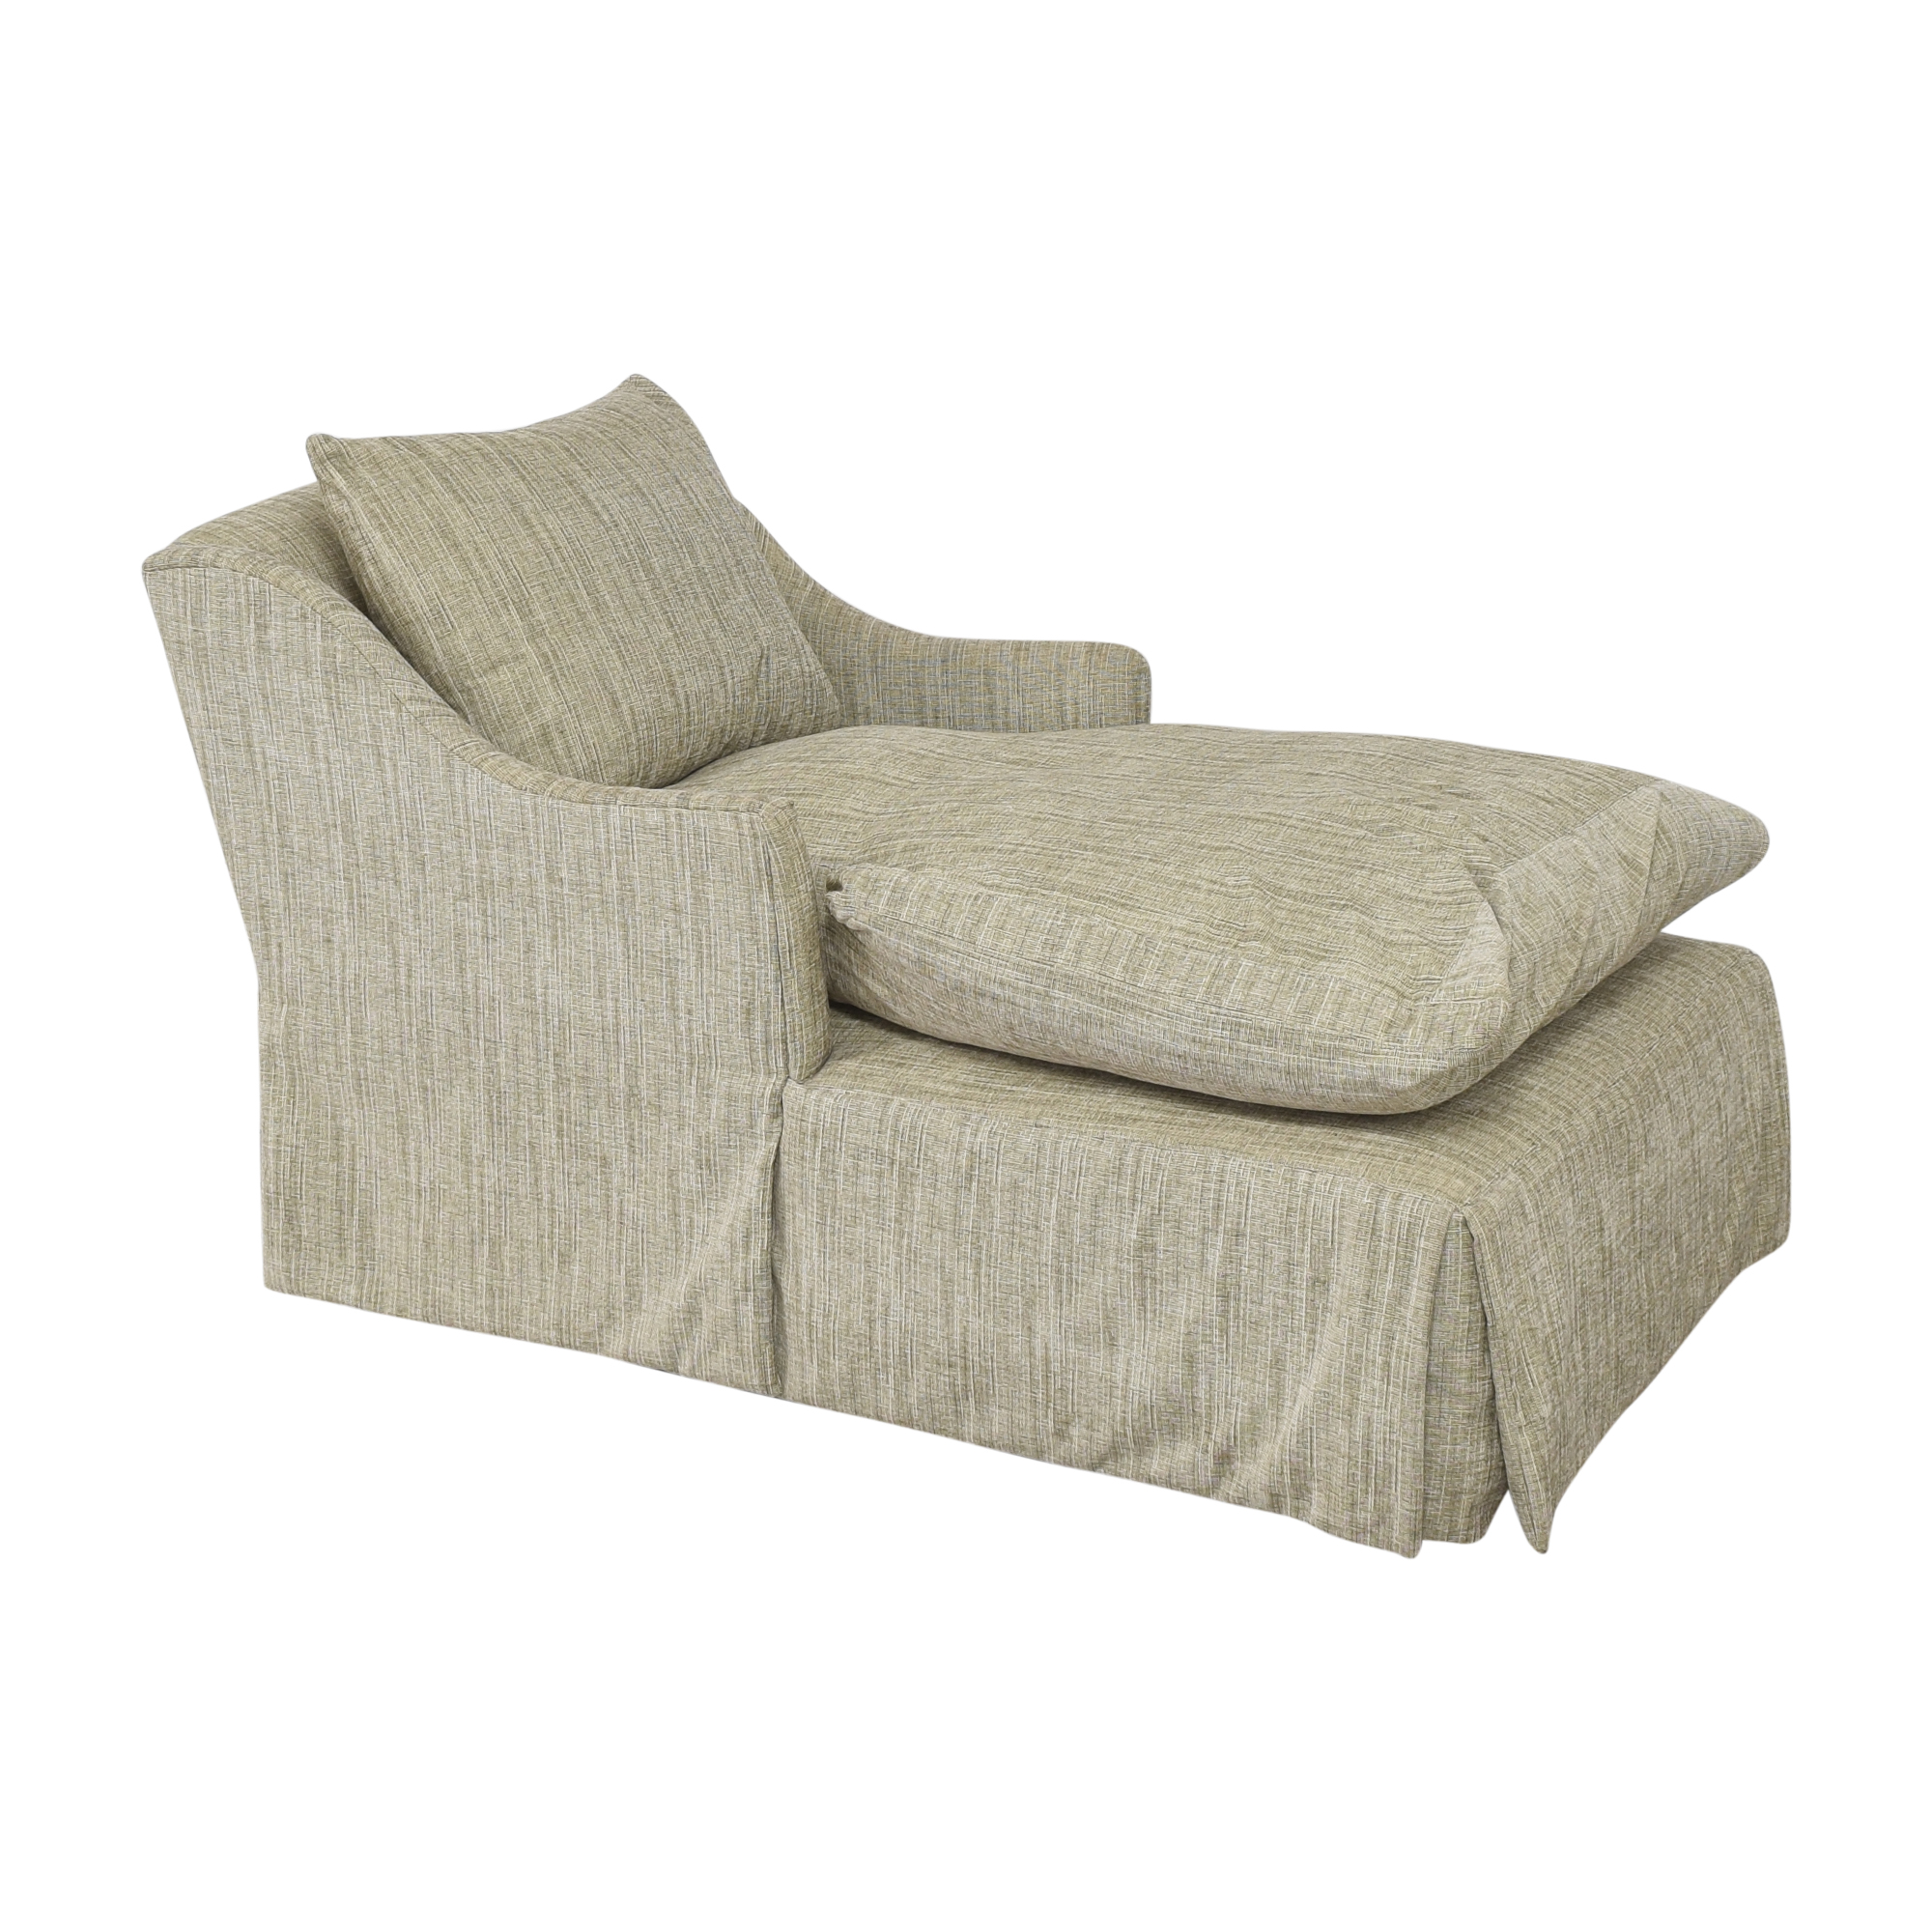 Country Willow Country Willow Evalani Slipcovered Chaise nyc